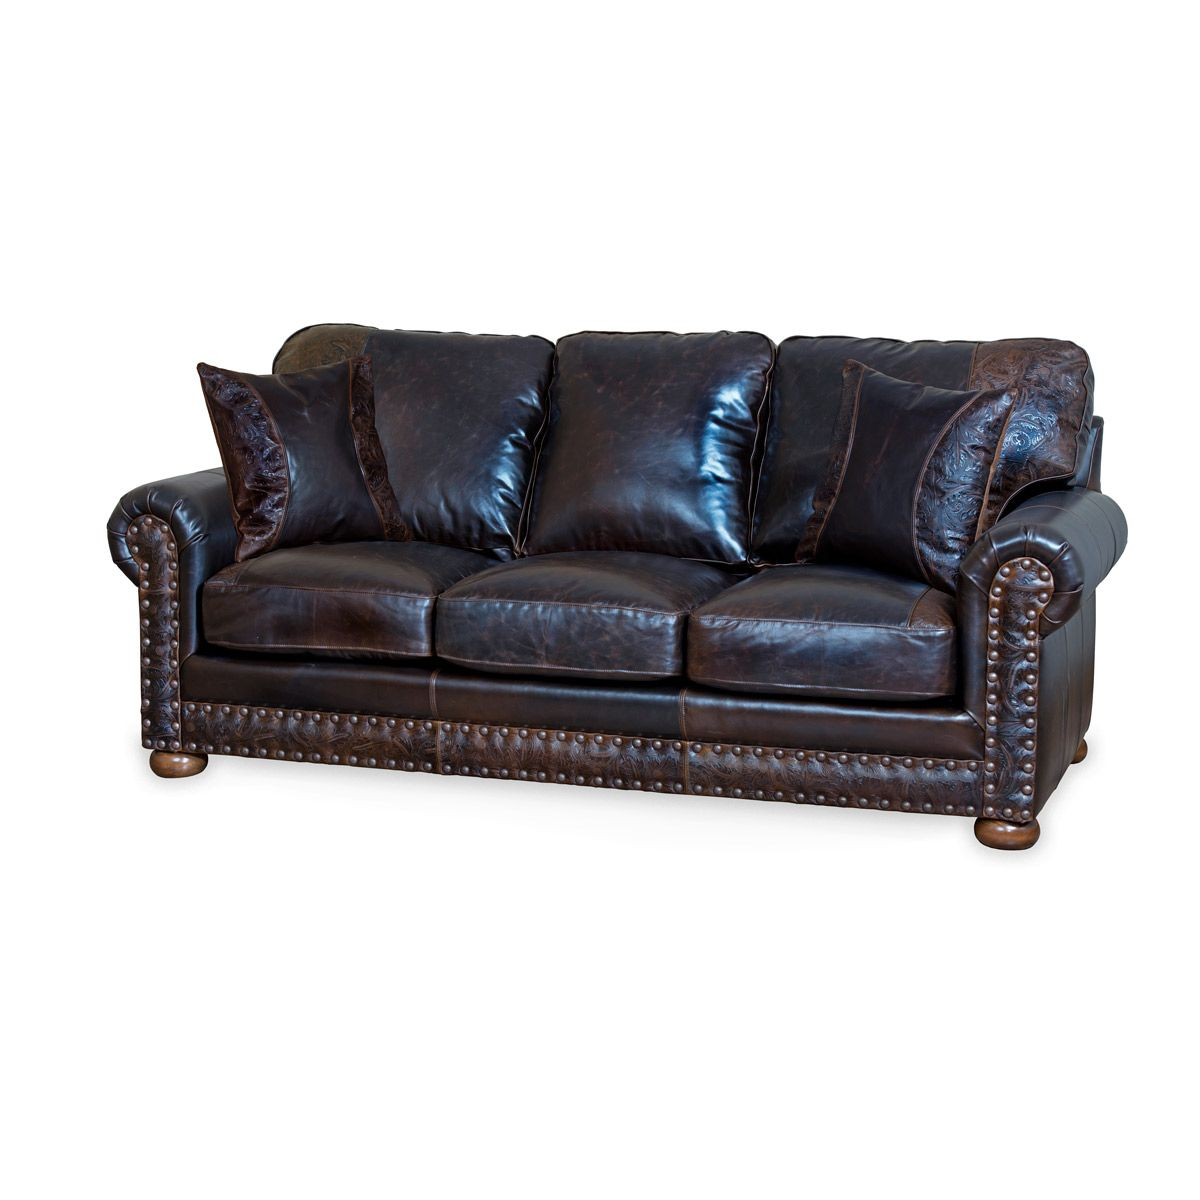 The American Outlaw Sofa